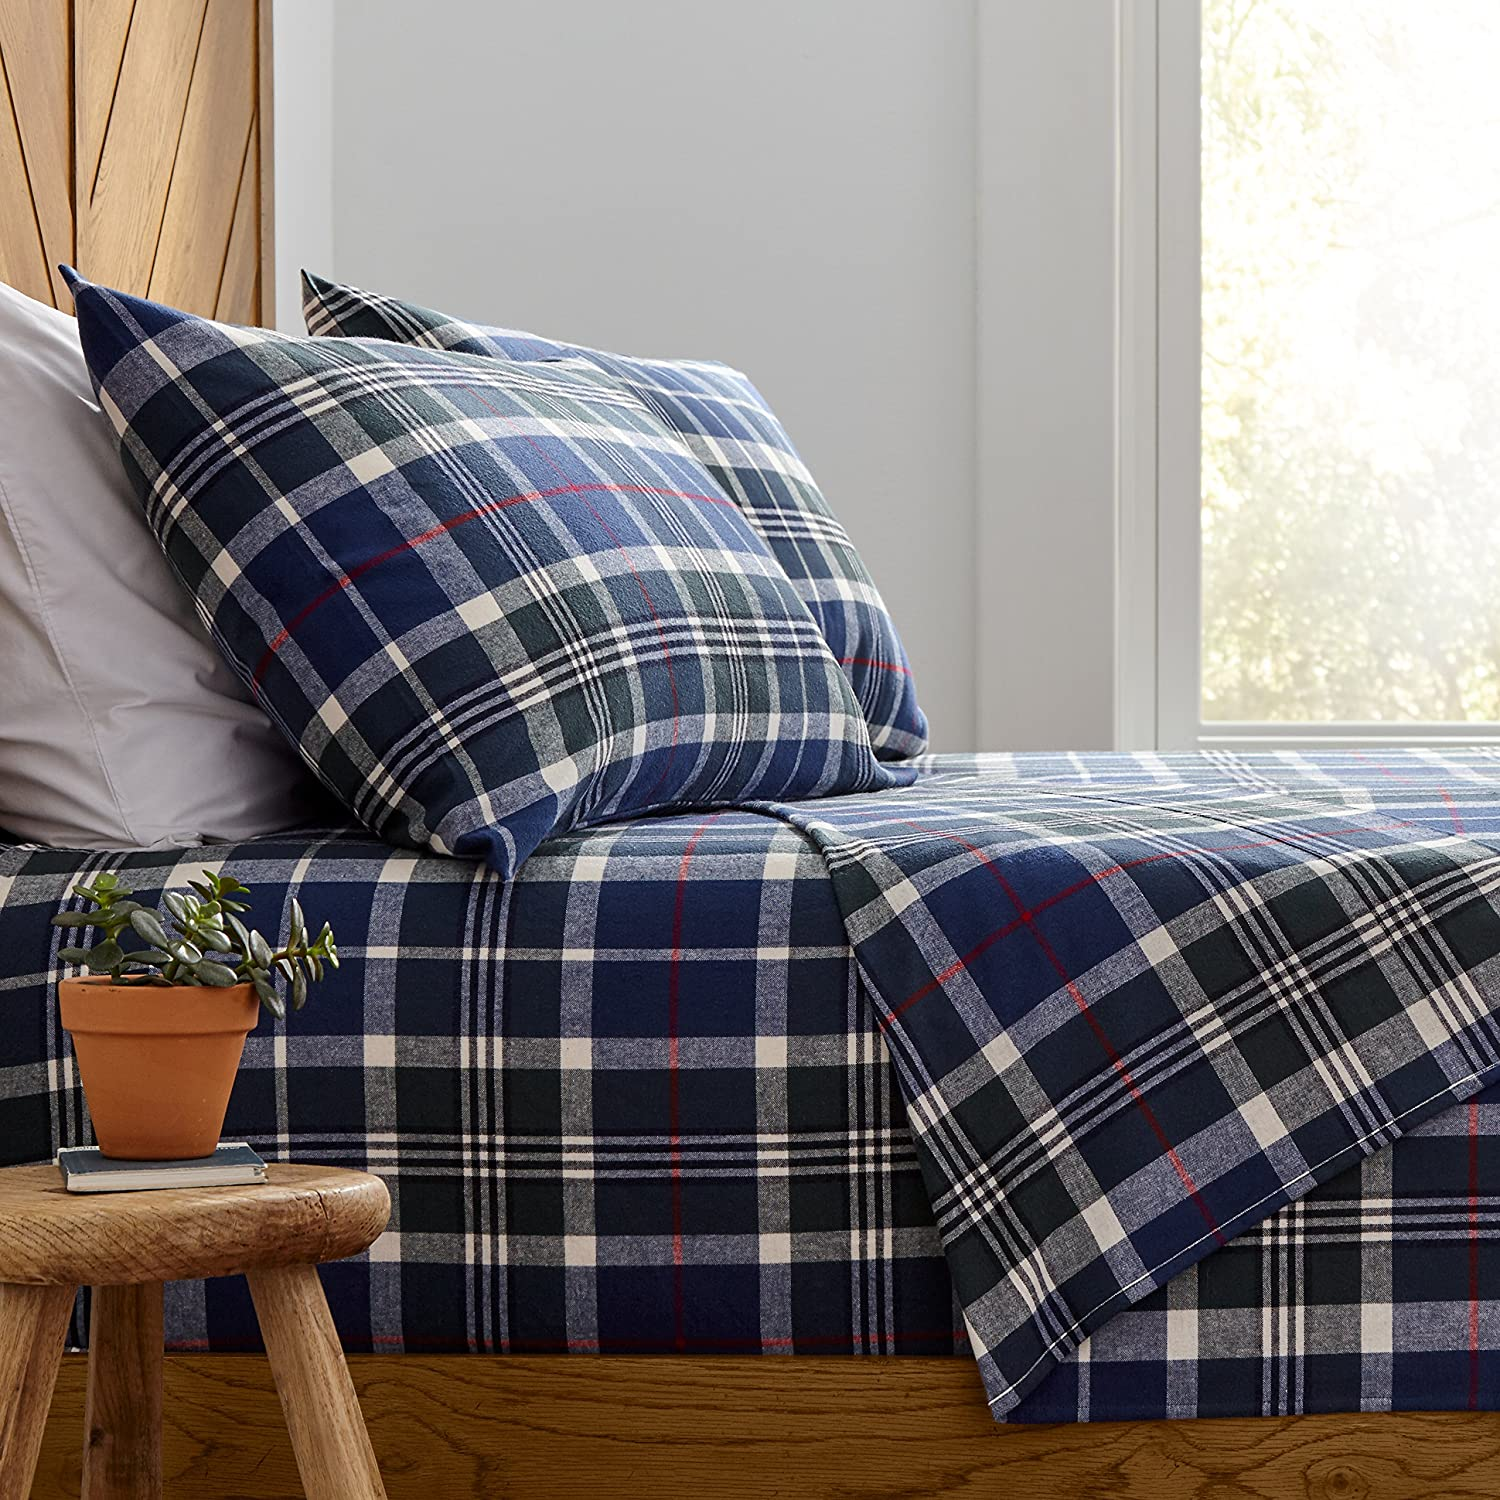 The Best Flannel Sheets For A Cozy Bed Bob Vila